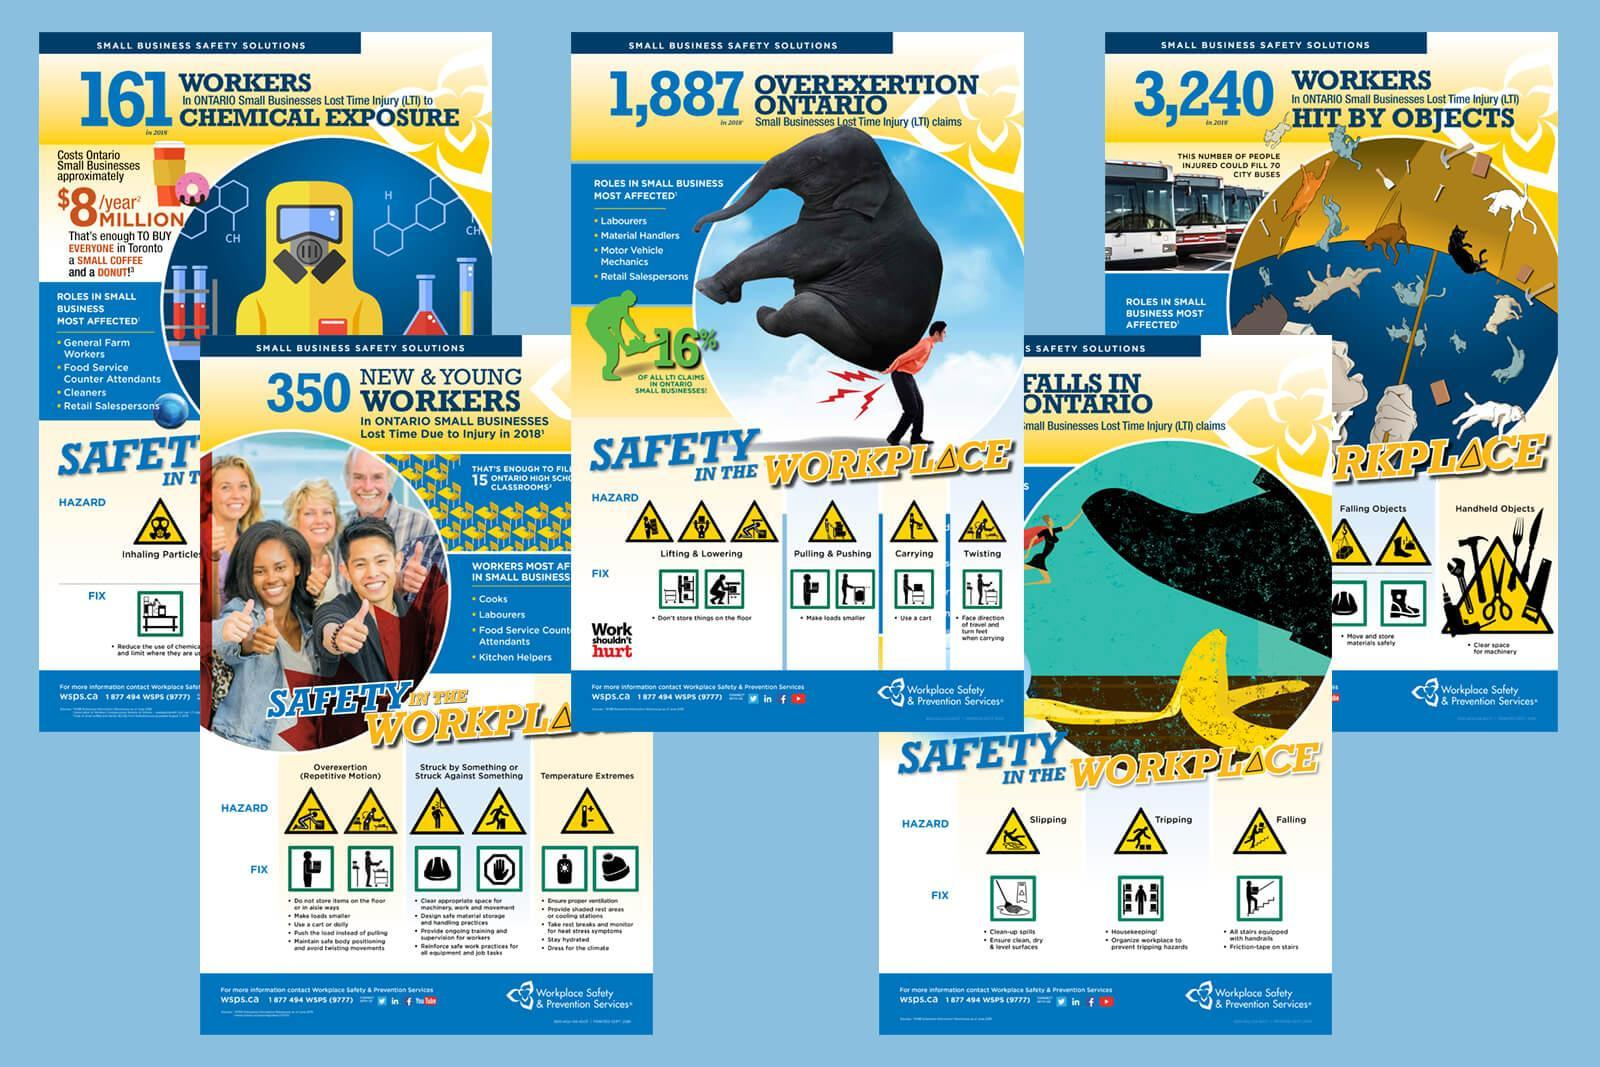 Free posters help keep safety on the minds of workers